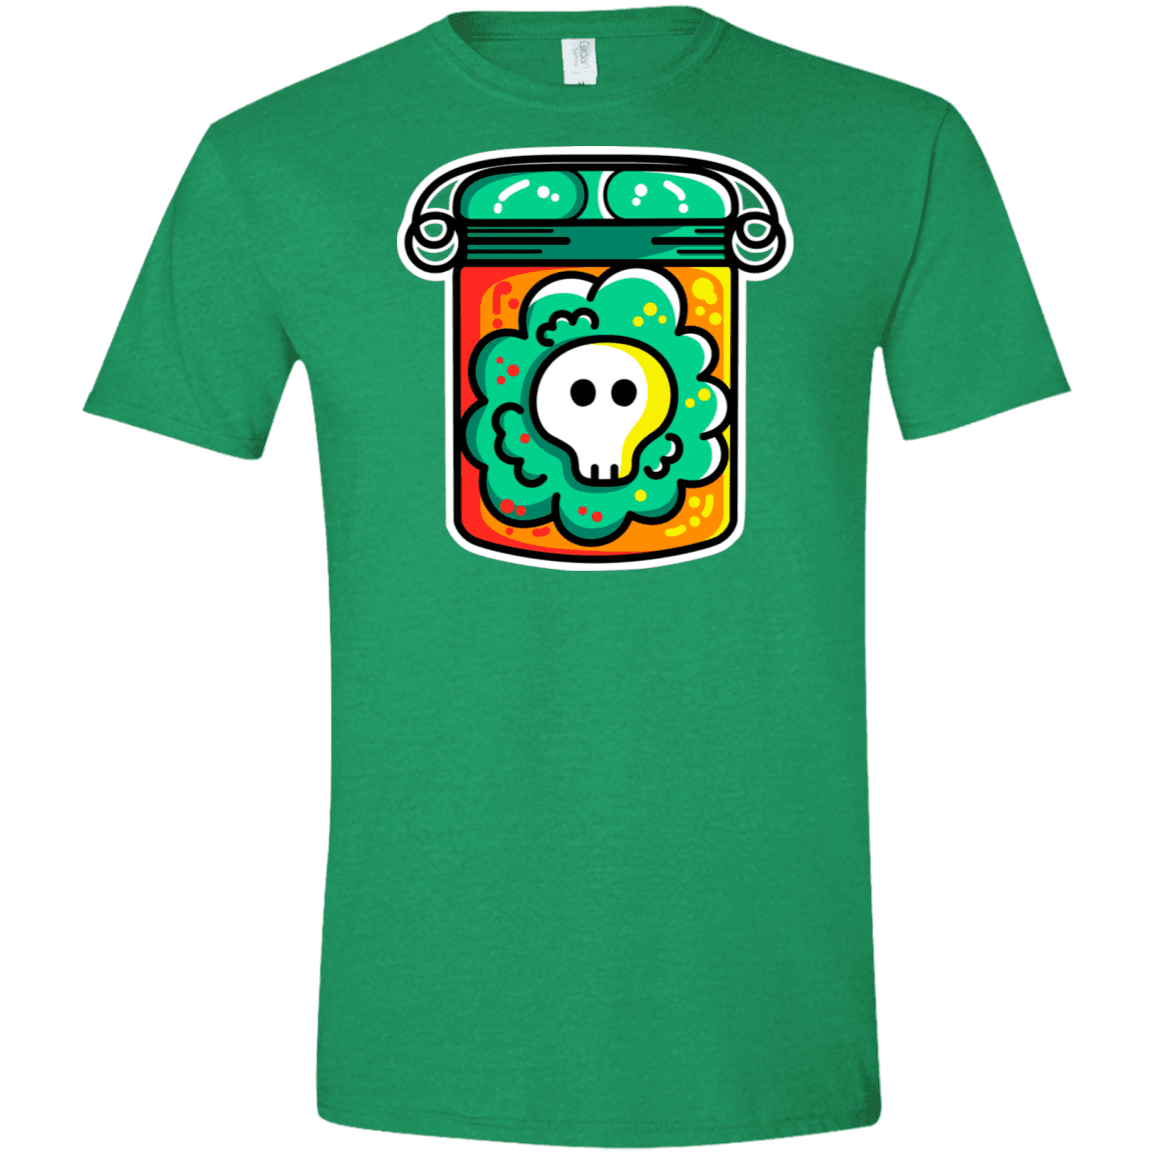 T-Shirts Heather Irish Green / M Cute Skull In A Jar Men's Semi-Fitted Softstyle